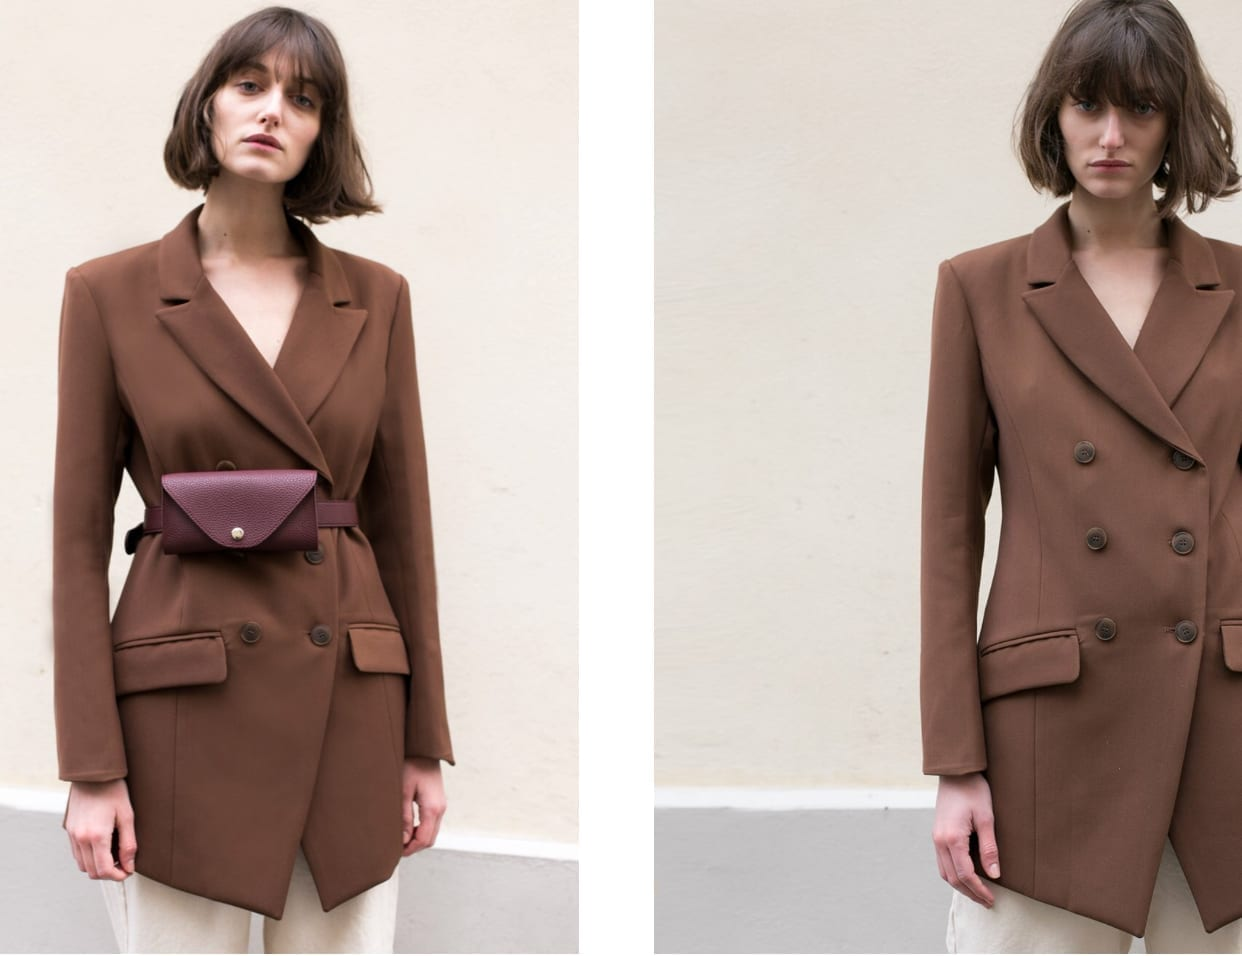 Vestirsi di marrone, brown aesthetic, theladycracy.it, abbinare marrone, colori tendenza 2018, blogger moda più seguite 2018, elisa bellino, fashion blogger italiane 2018, idee outfit blogger, instagram trend 2018, frankie shop blazer